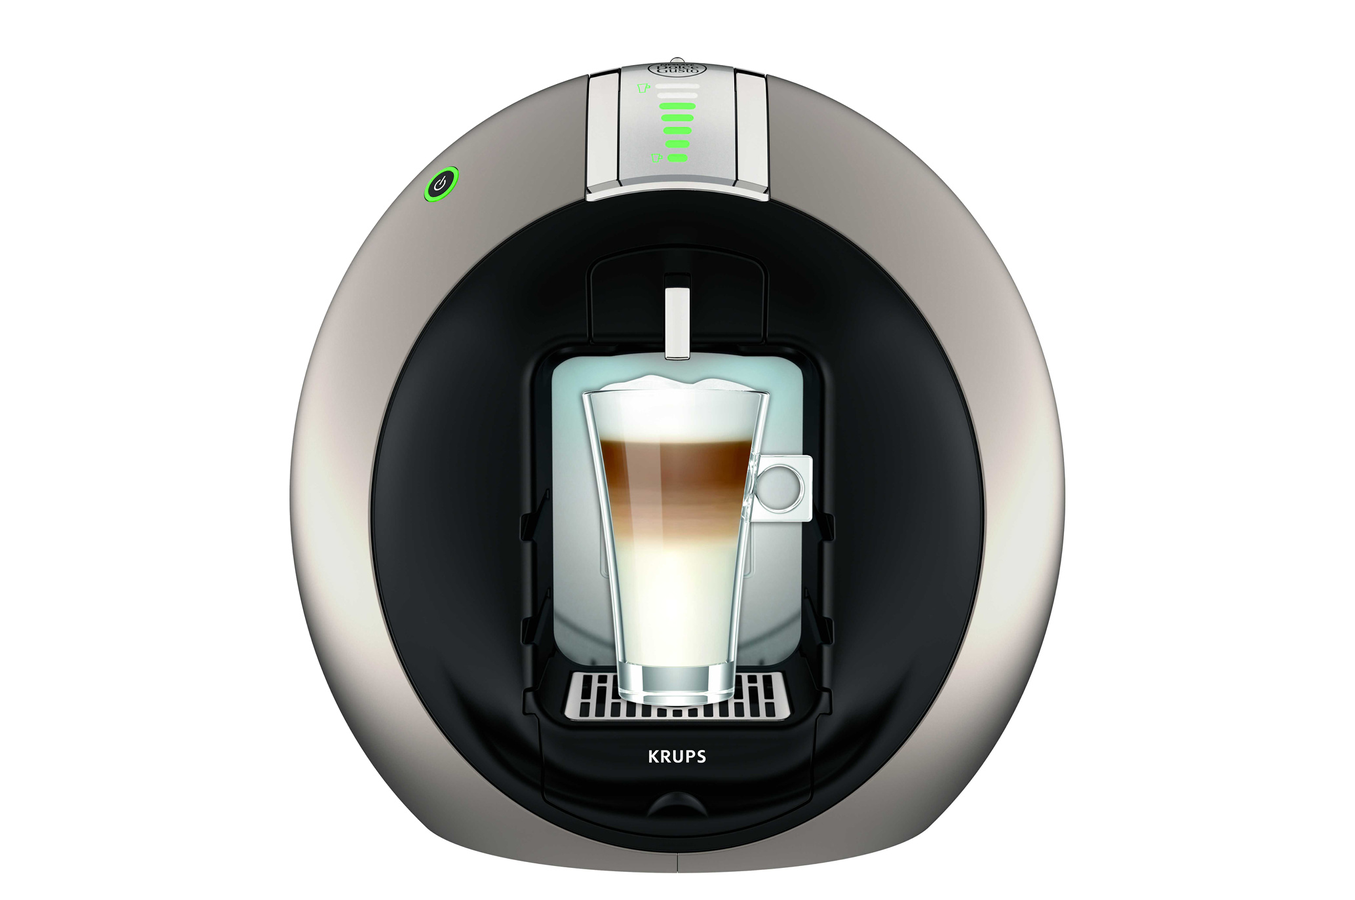 Expresso krups nescafe dolce gusto circolo titane yy6001fd - Cafetiere dolce gusto darty ...